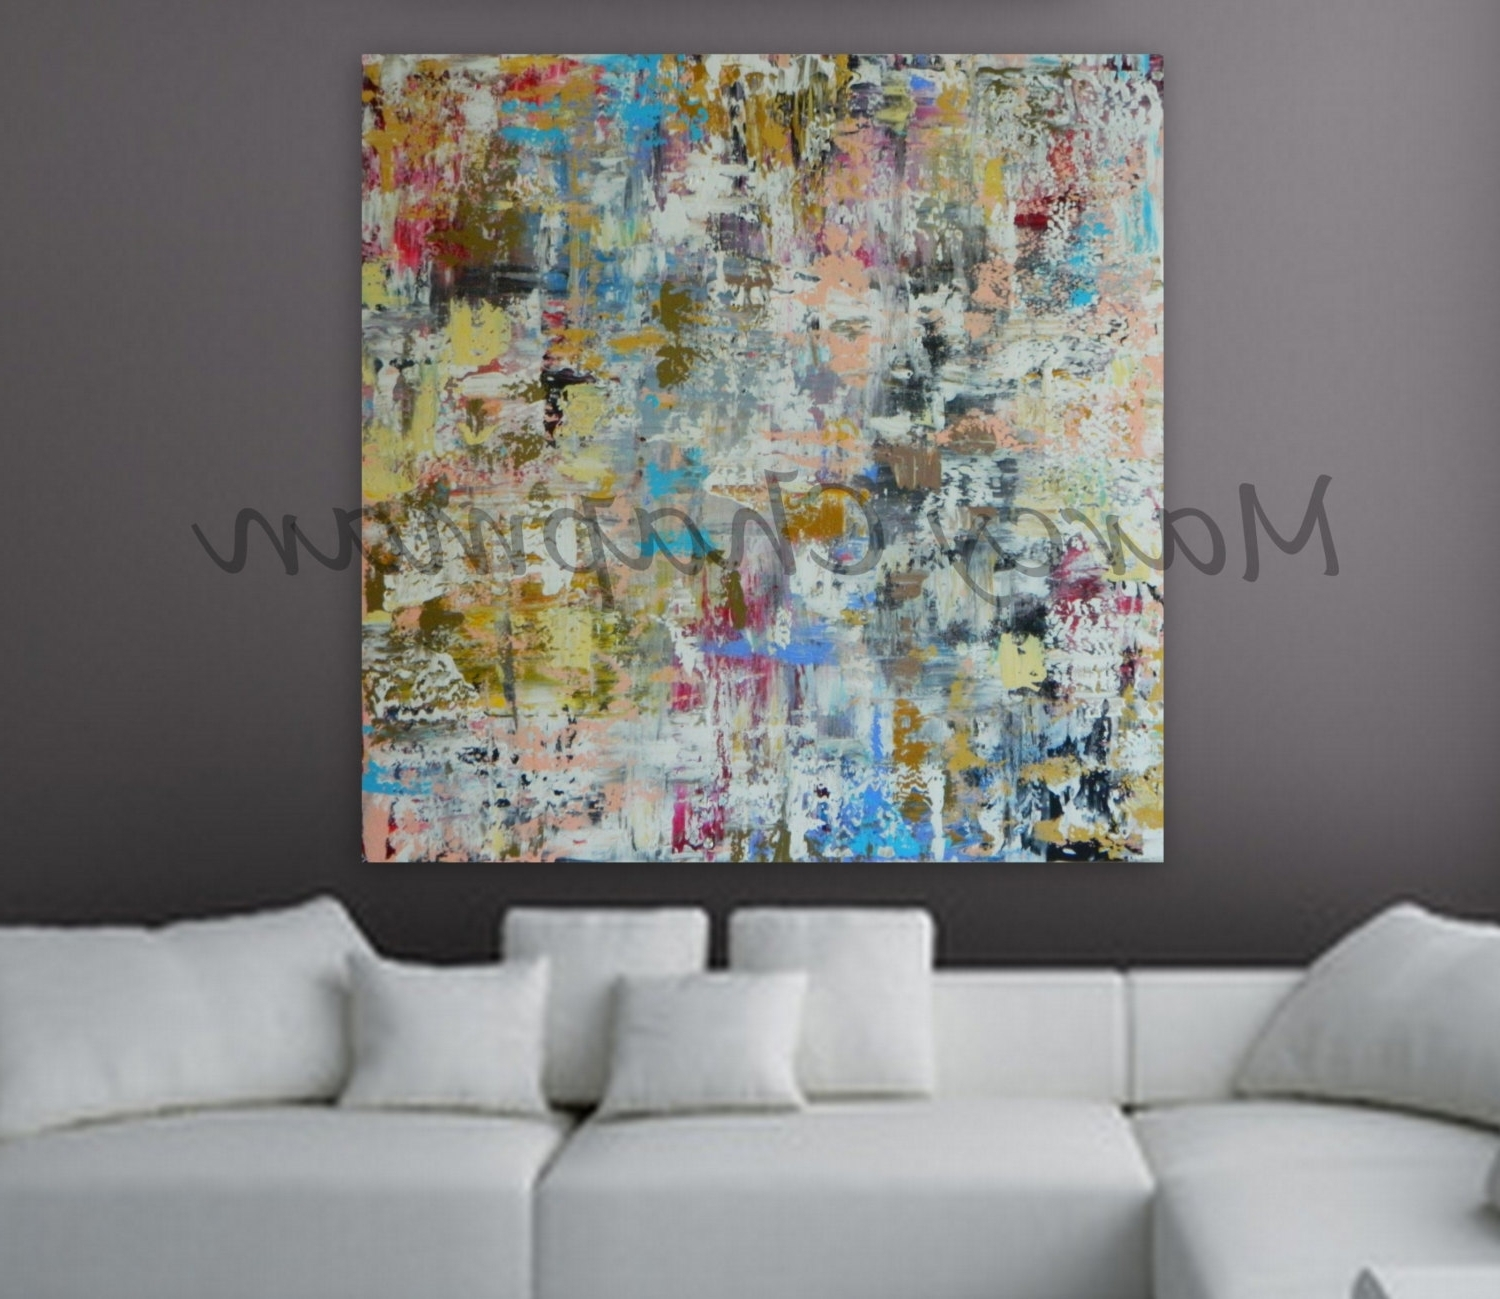 Most Current Xl, Large, Huge Abstract Painting 46 X 46 Unstretched Canvas Throughout 48X48 Canvas Wall Art (View 9 of 15)